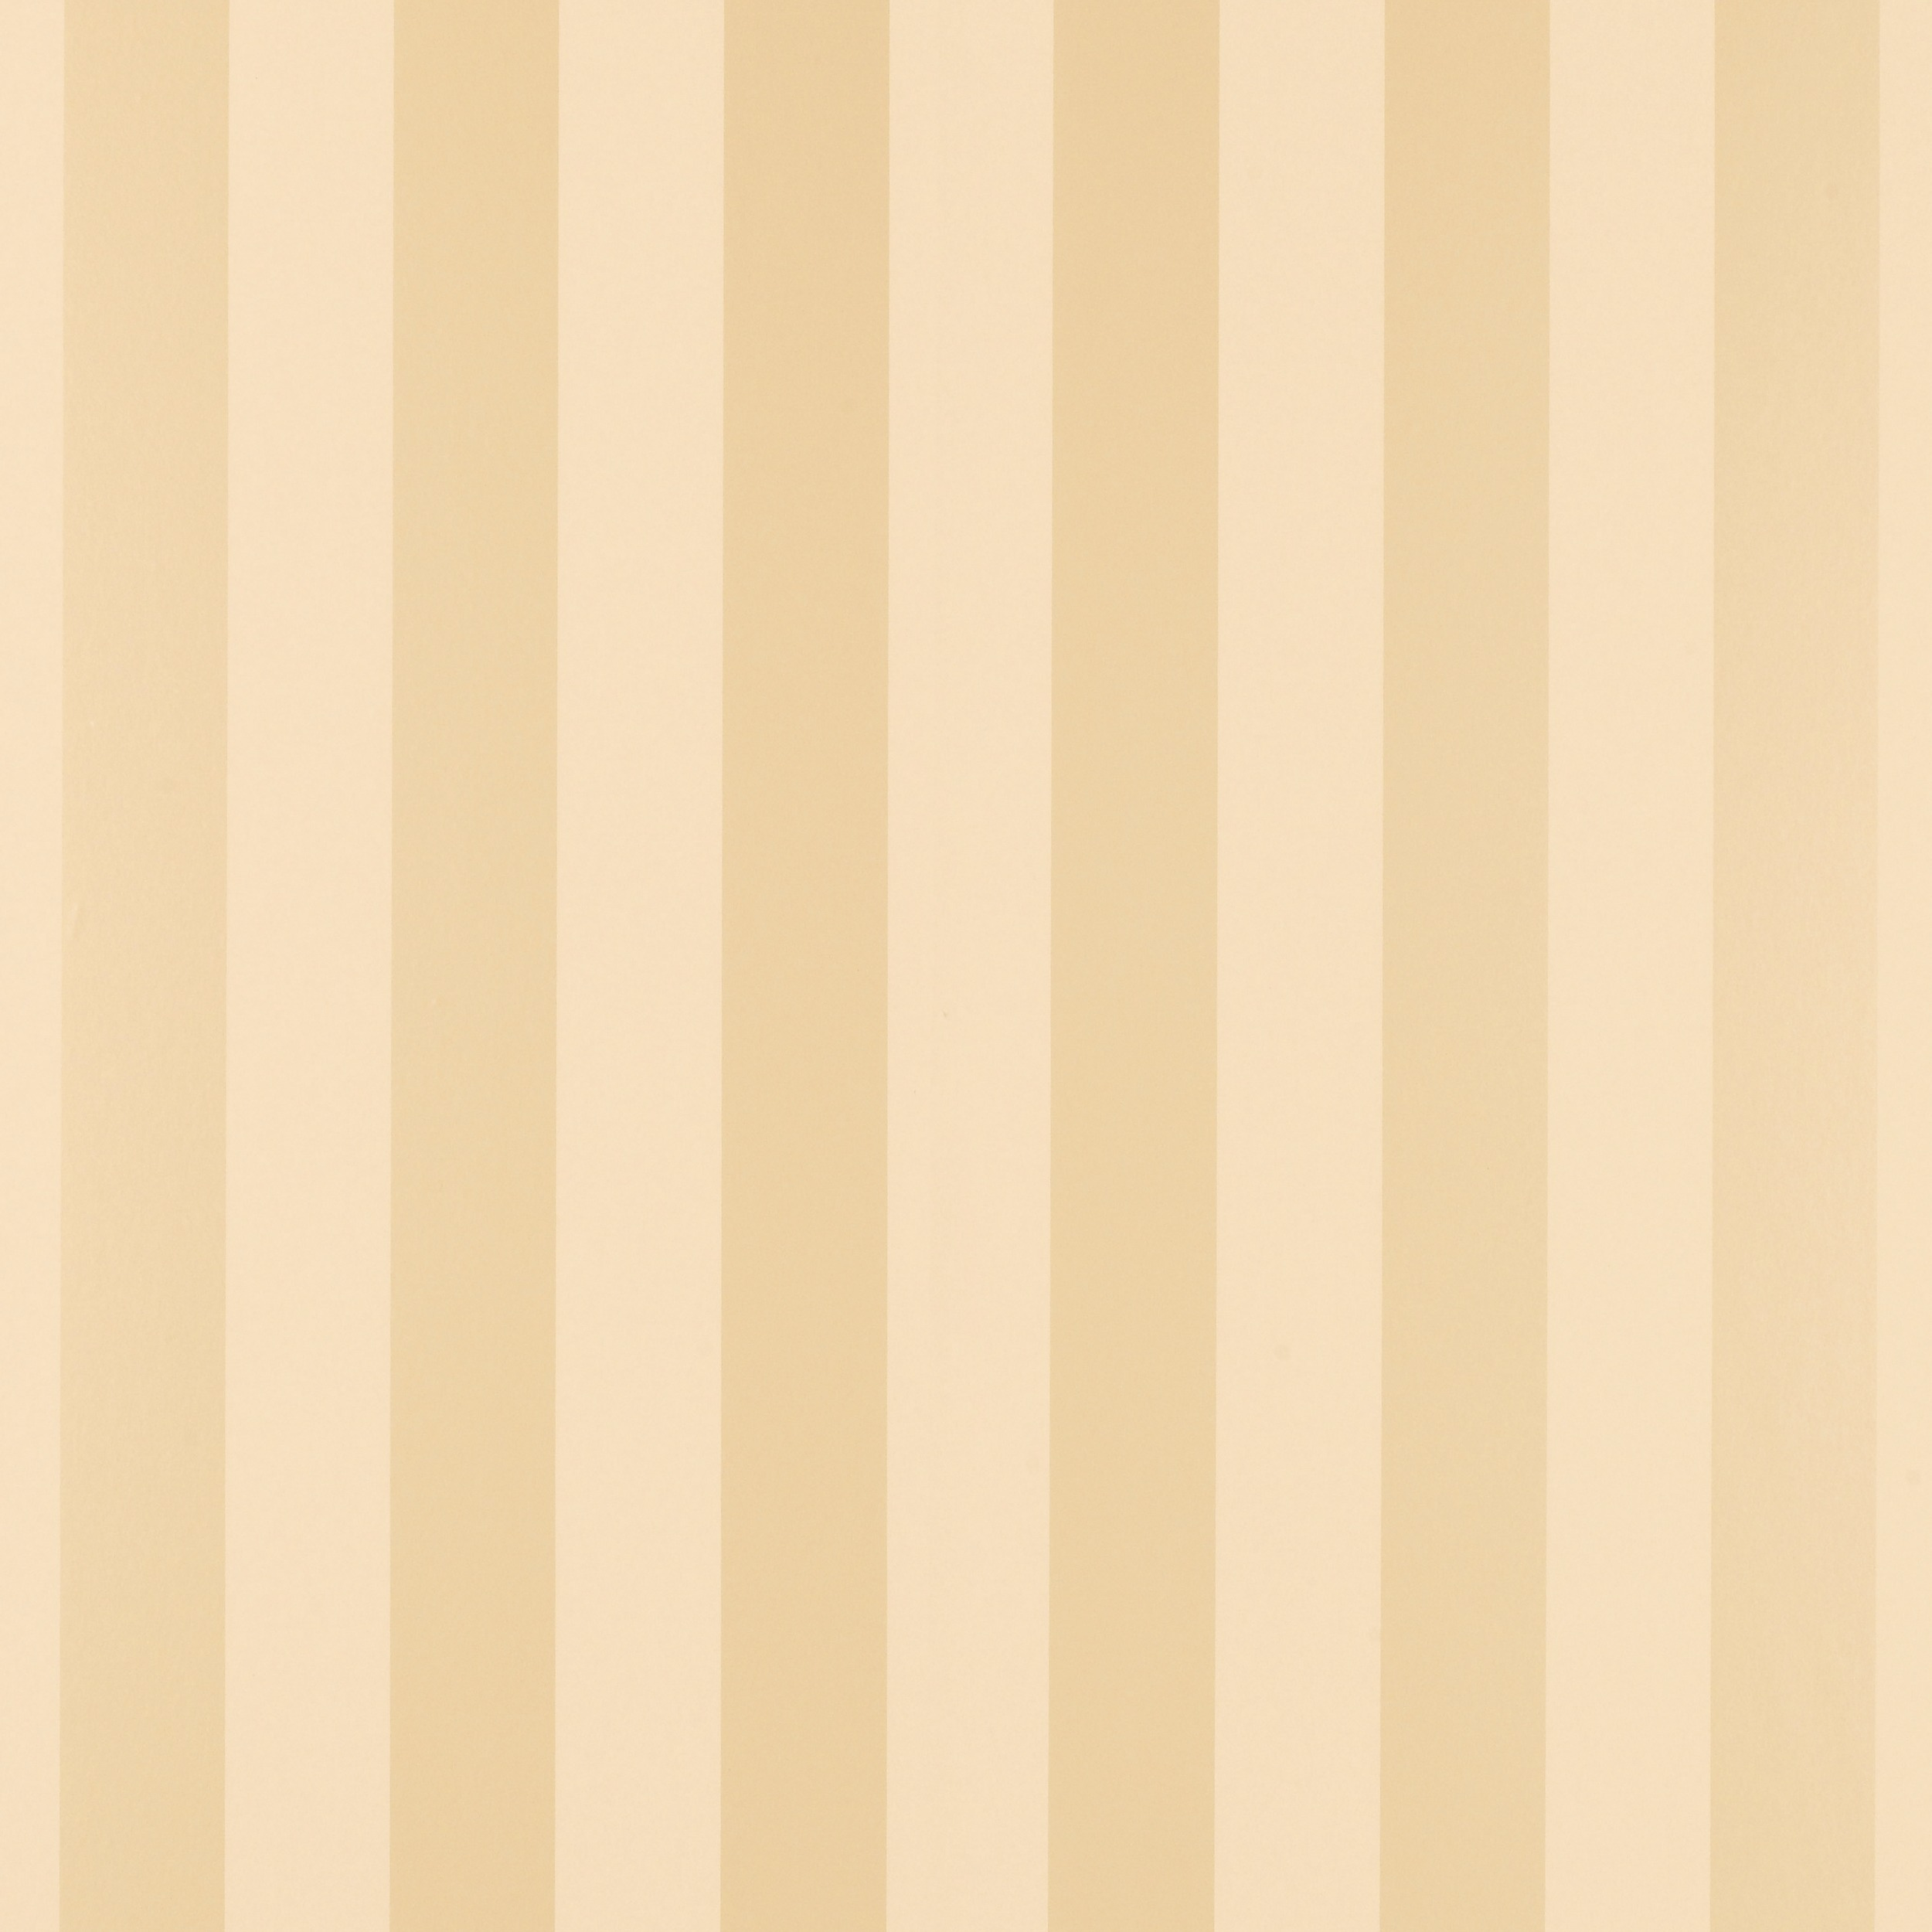 Black And Gold Striped Wallpaper Lille gold stripe wallpaper 2500x2500